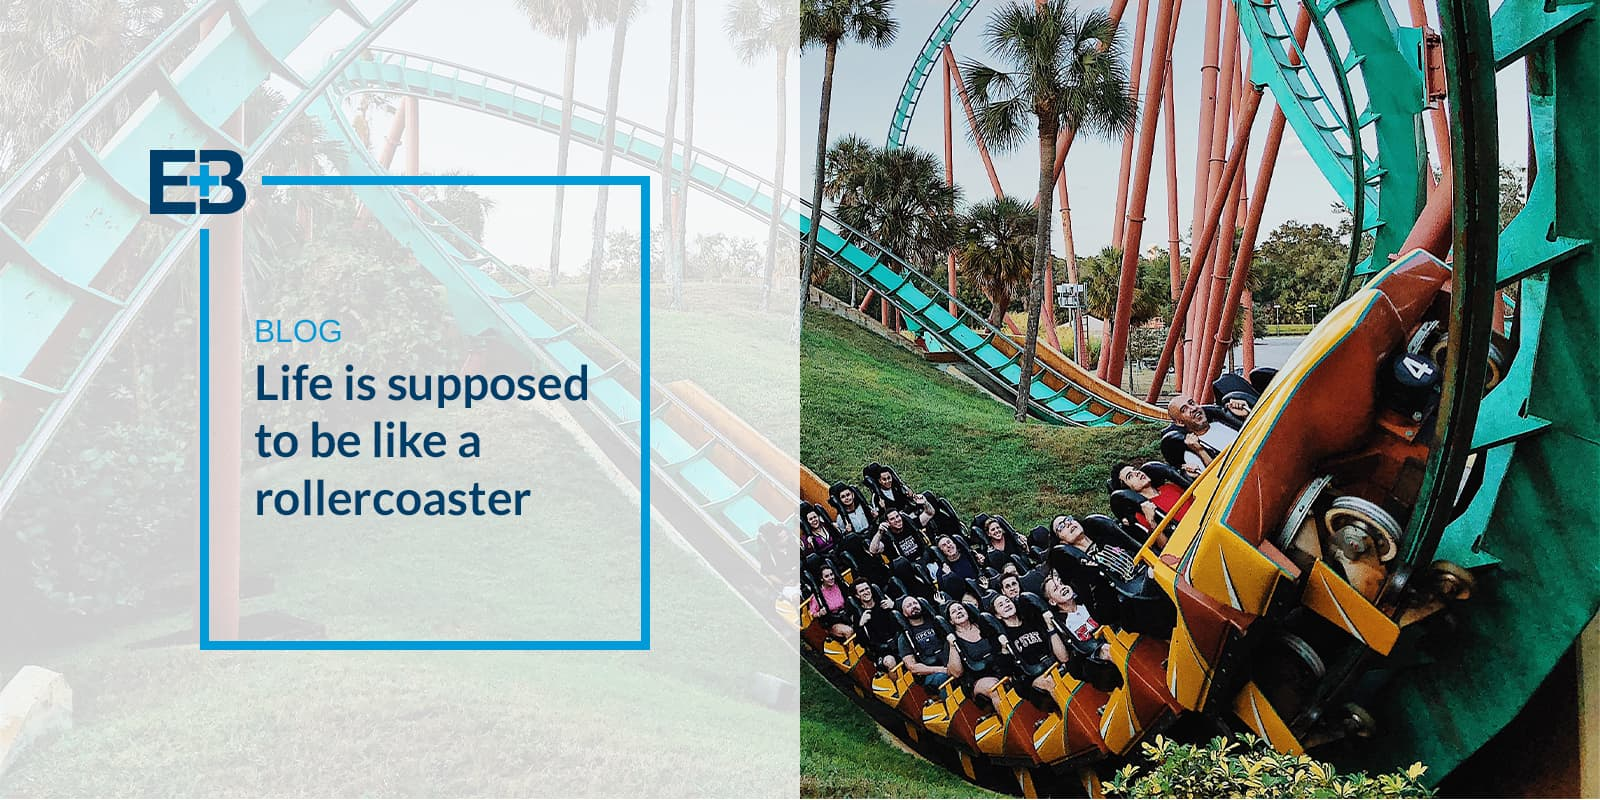 Life is supposed to be like a rollercoaster